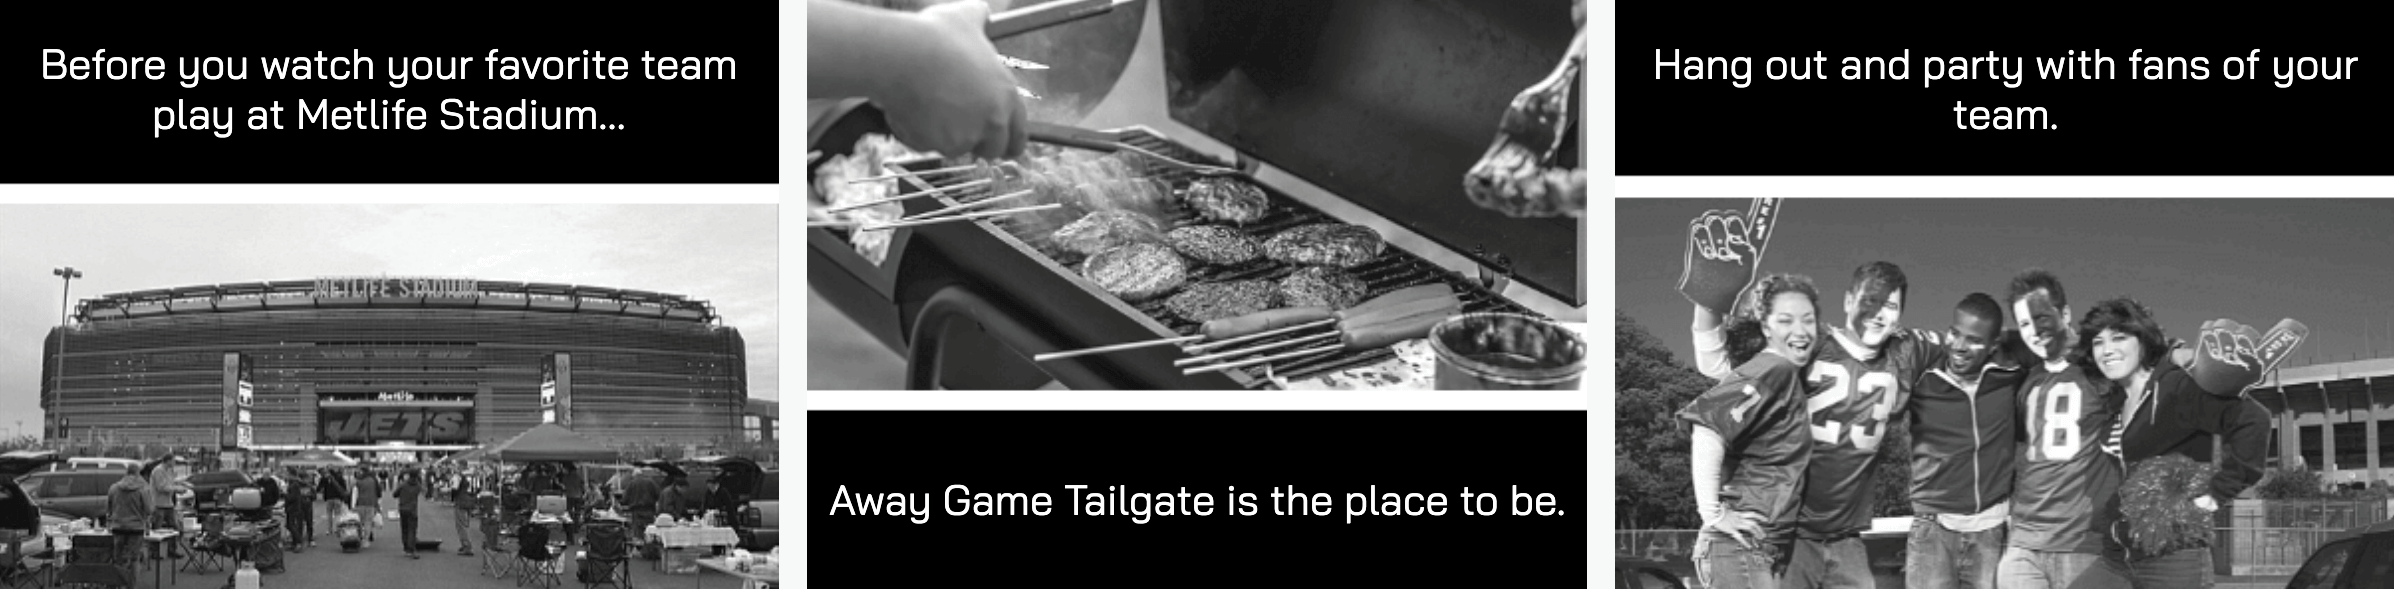 away game tailgate party